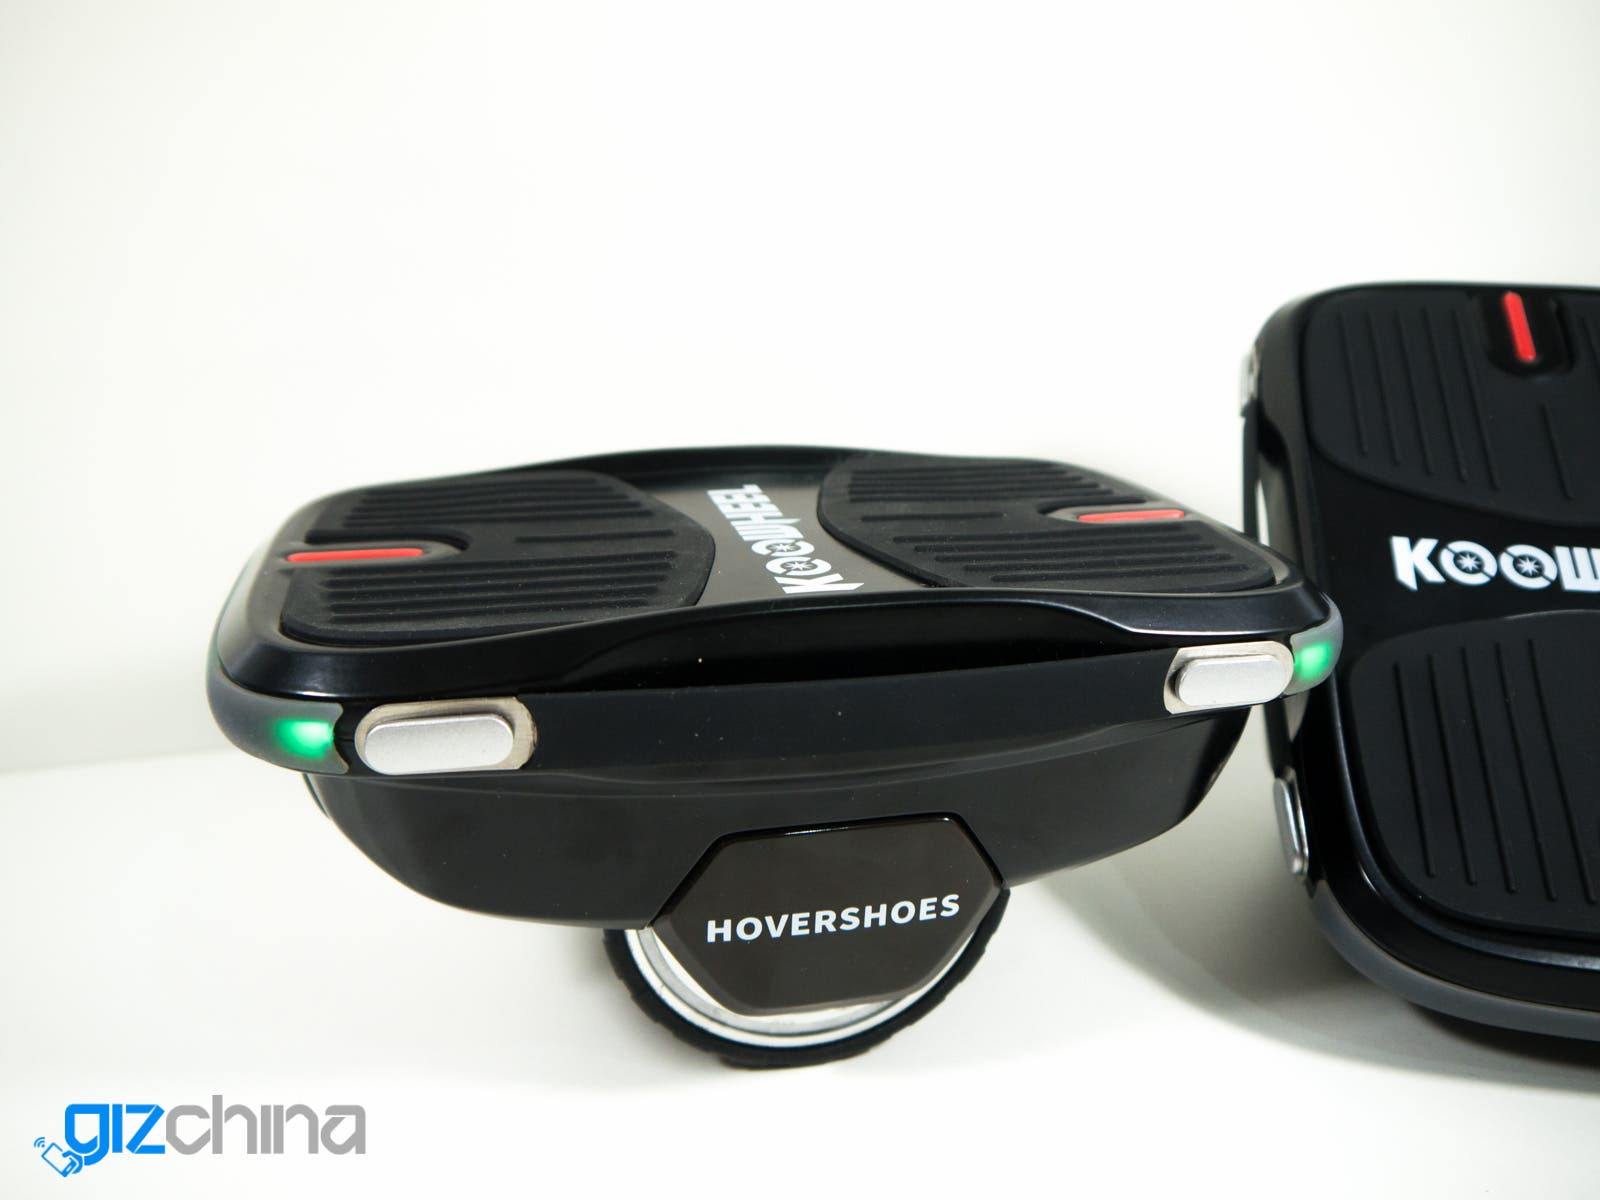 KOOWHEEL Hovershoes Review